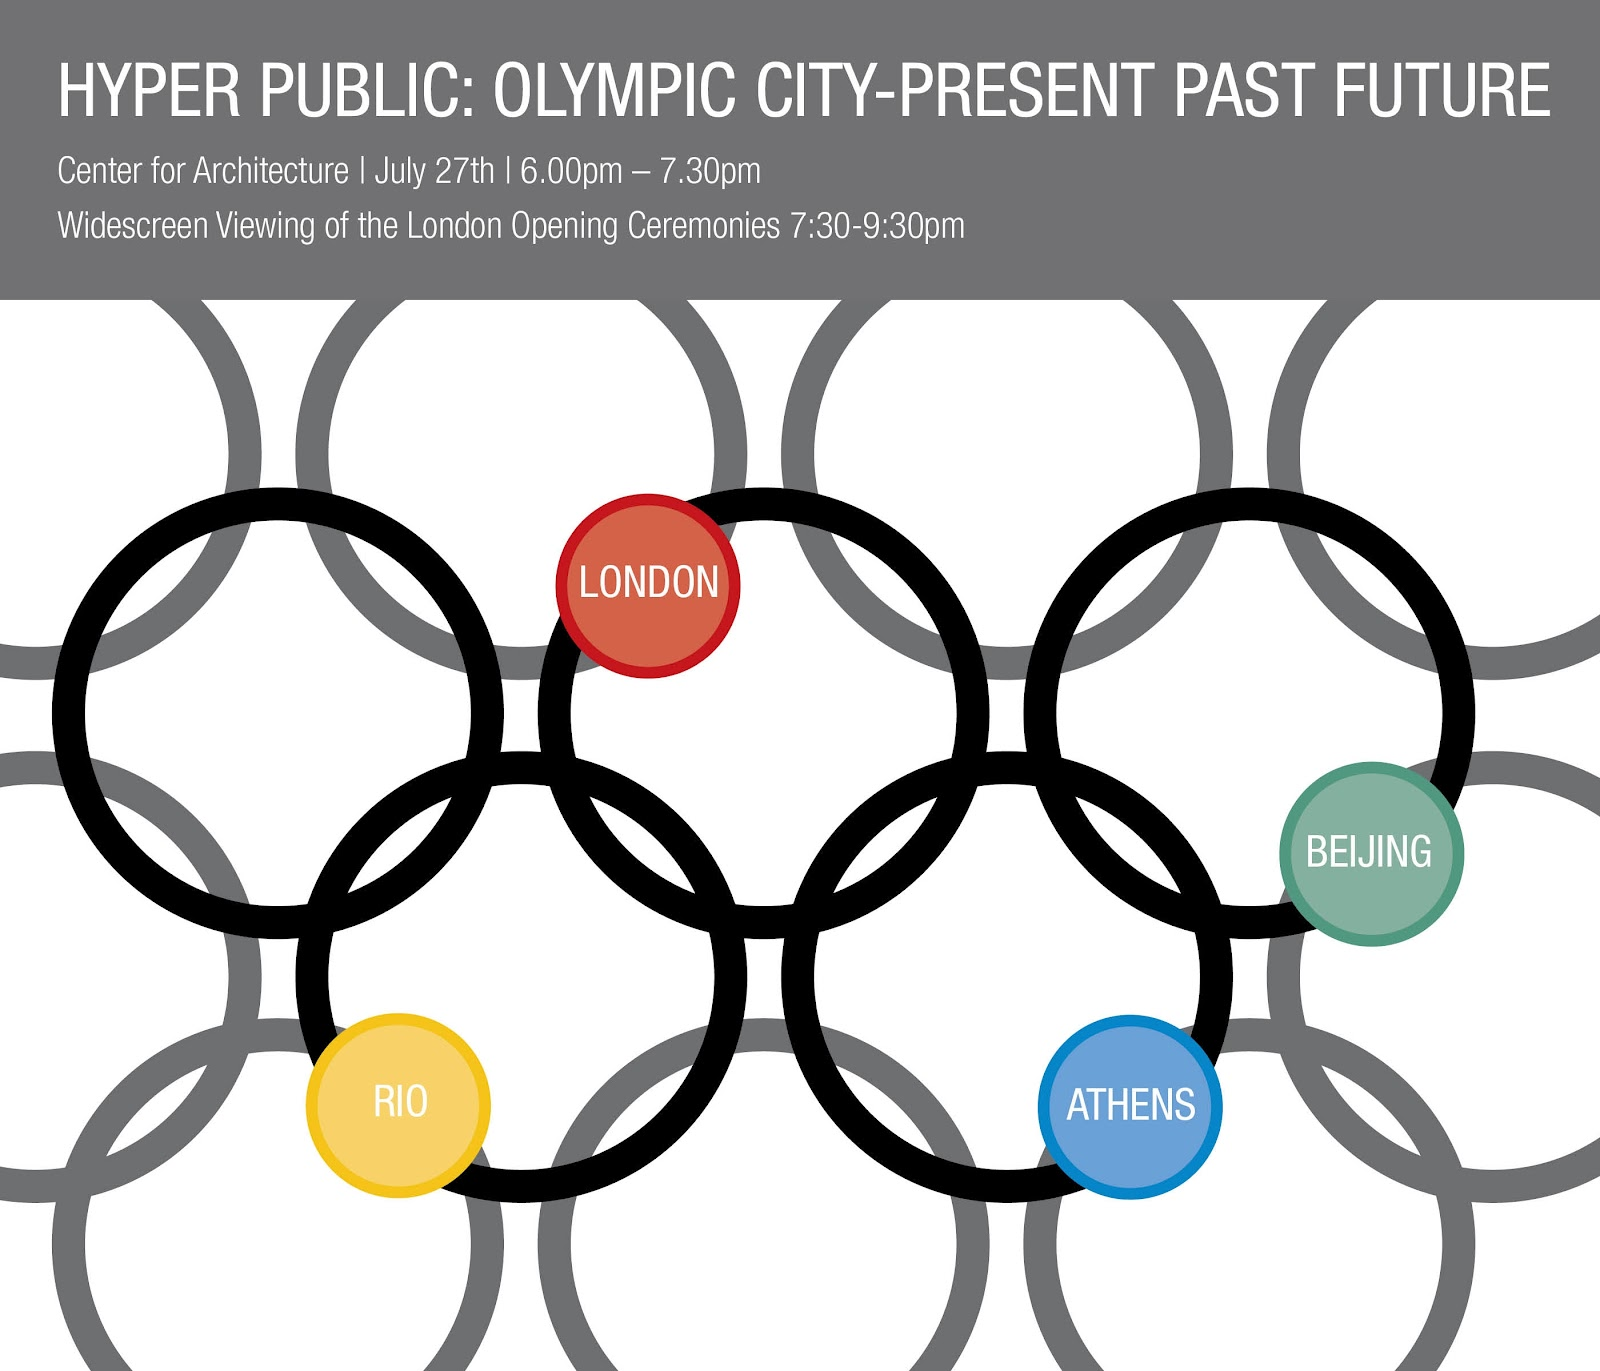 This Evening Session At The New York Center For Architecture July 27 Will Focus On London